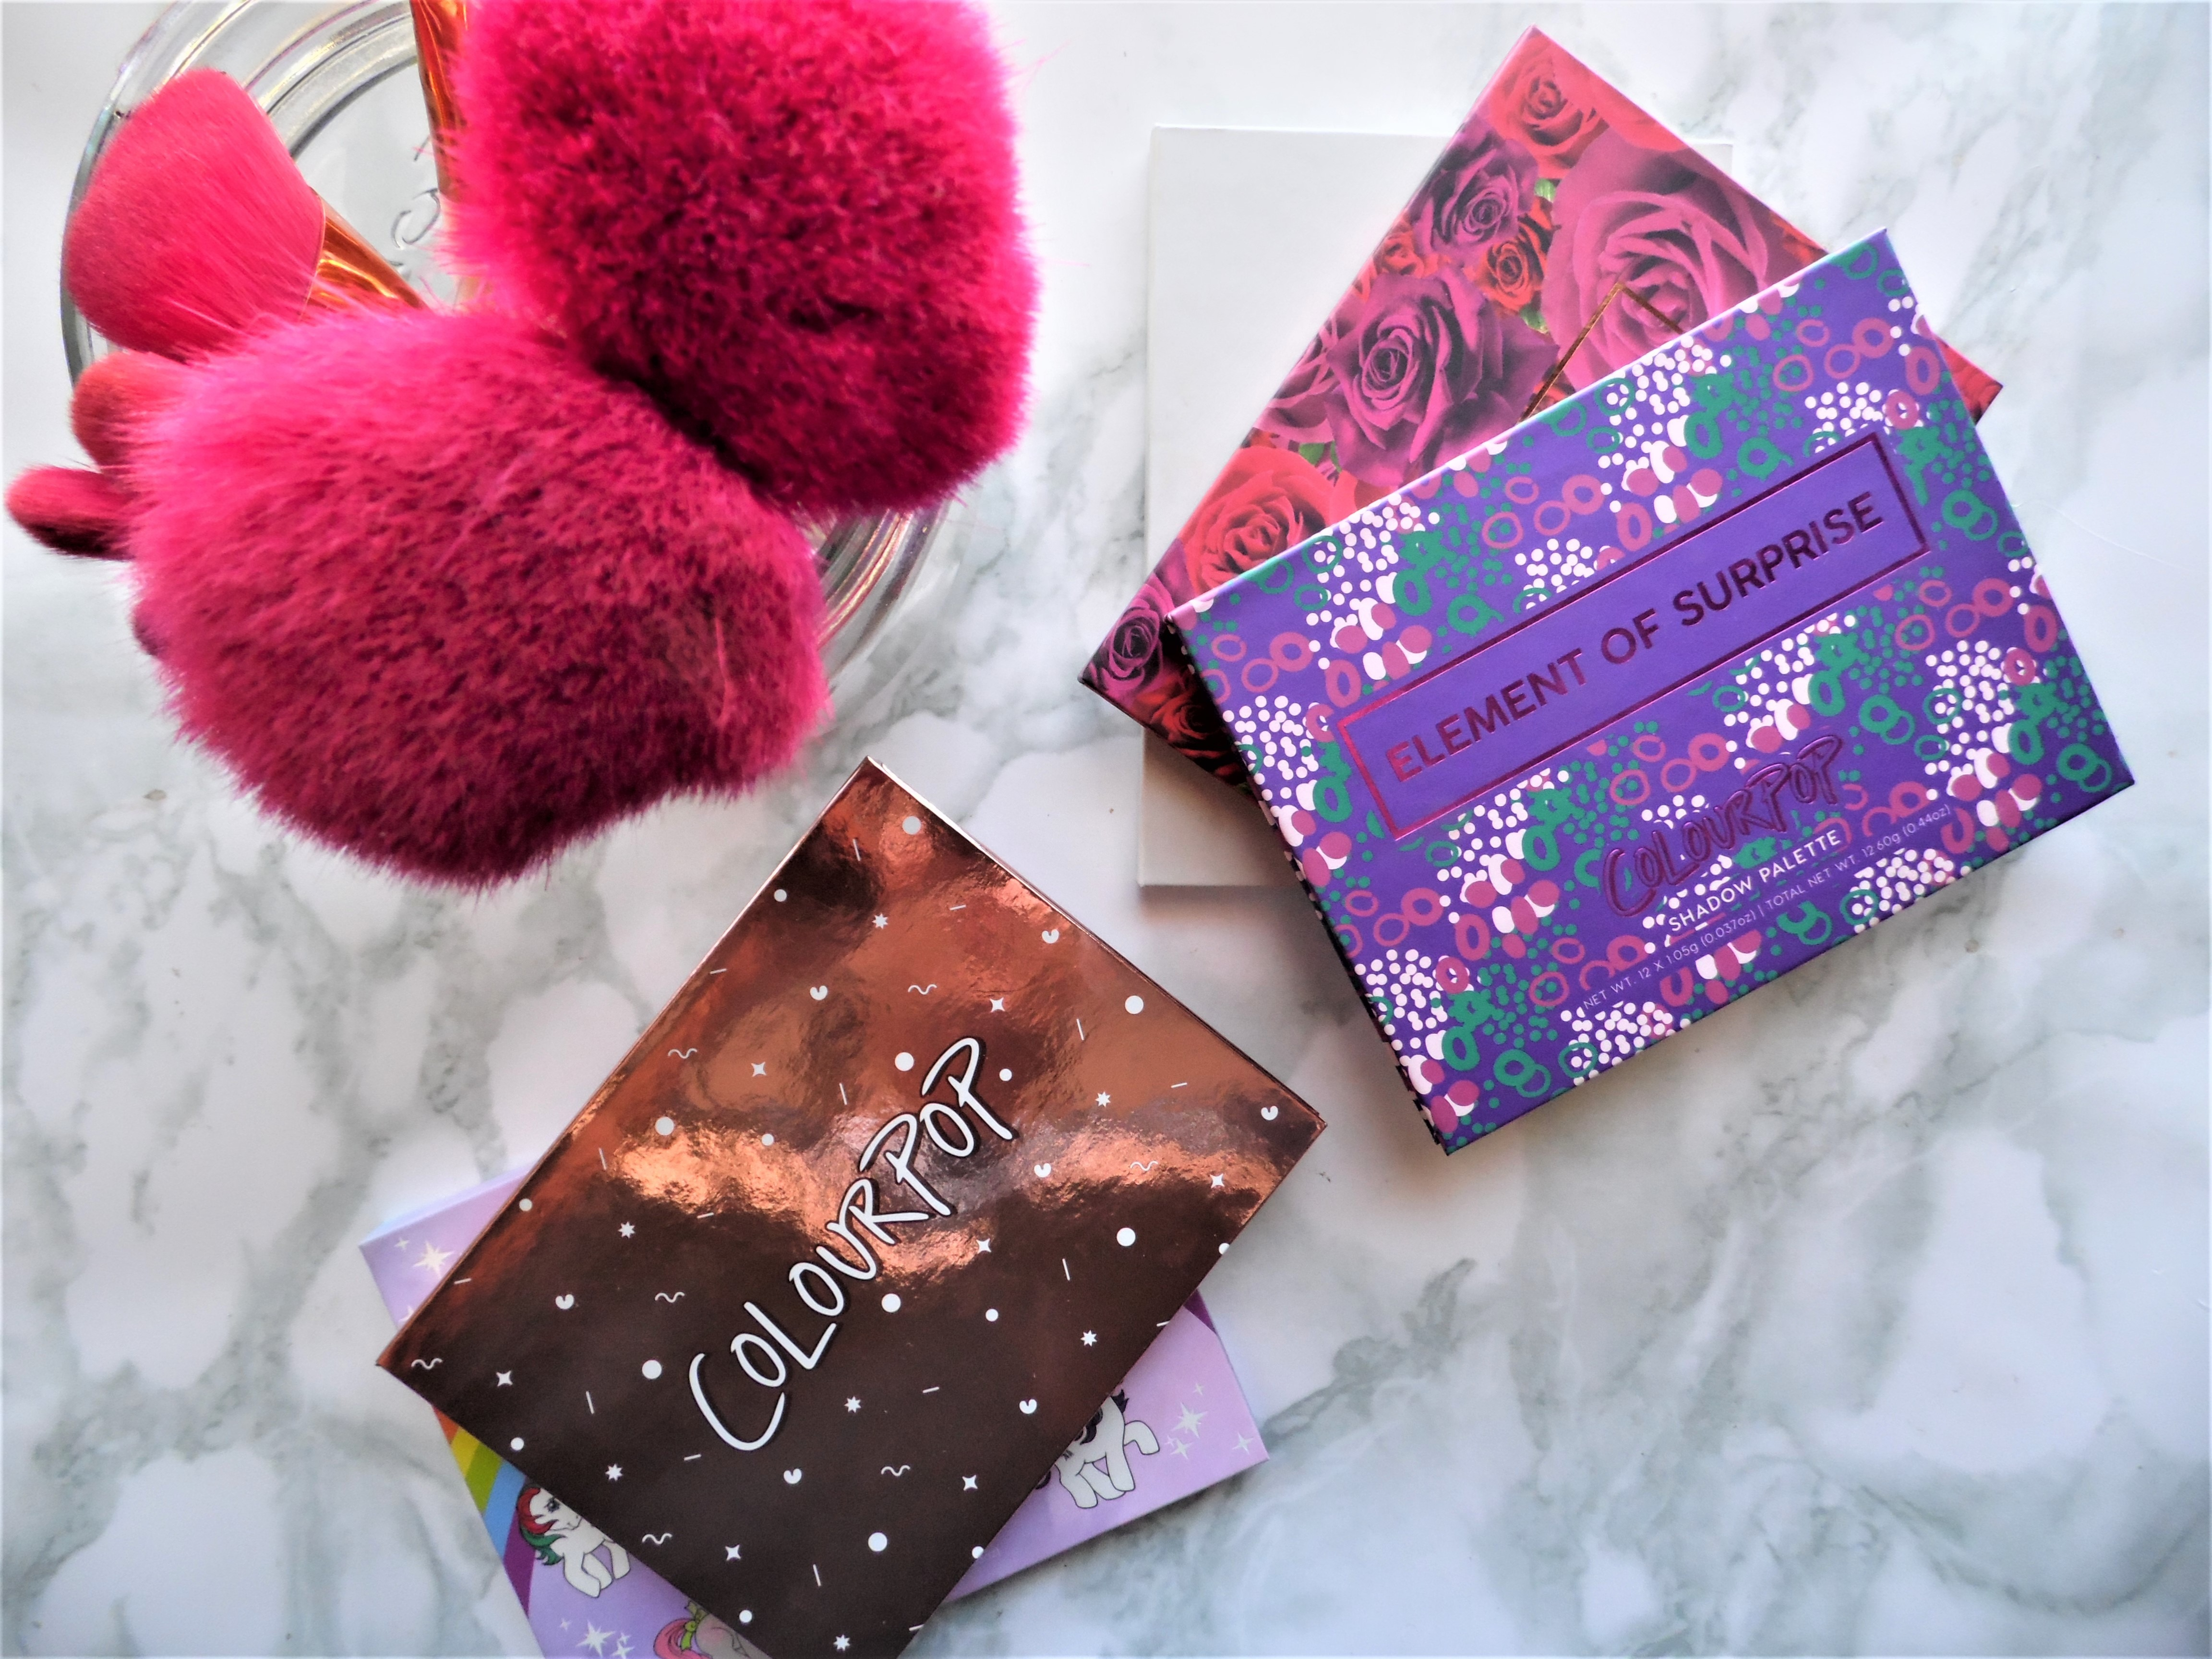 ColourPop Eyeshadow Palettes - By Megan Kelly